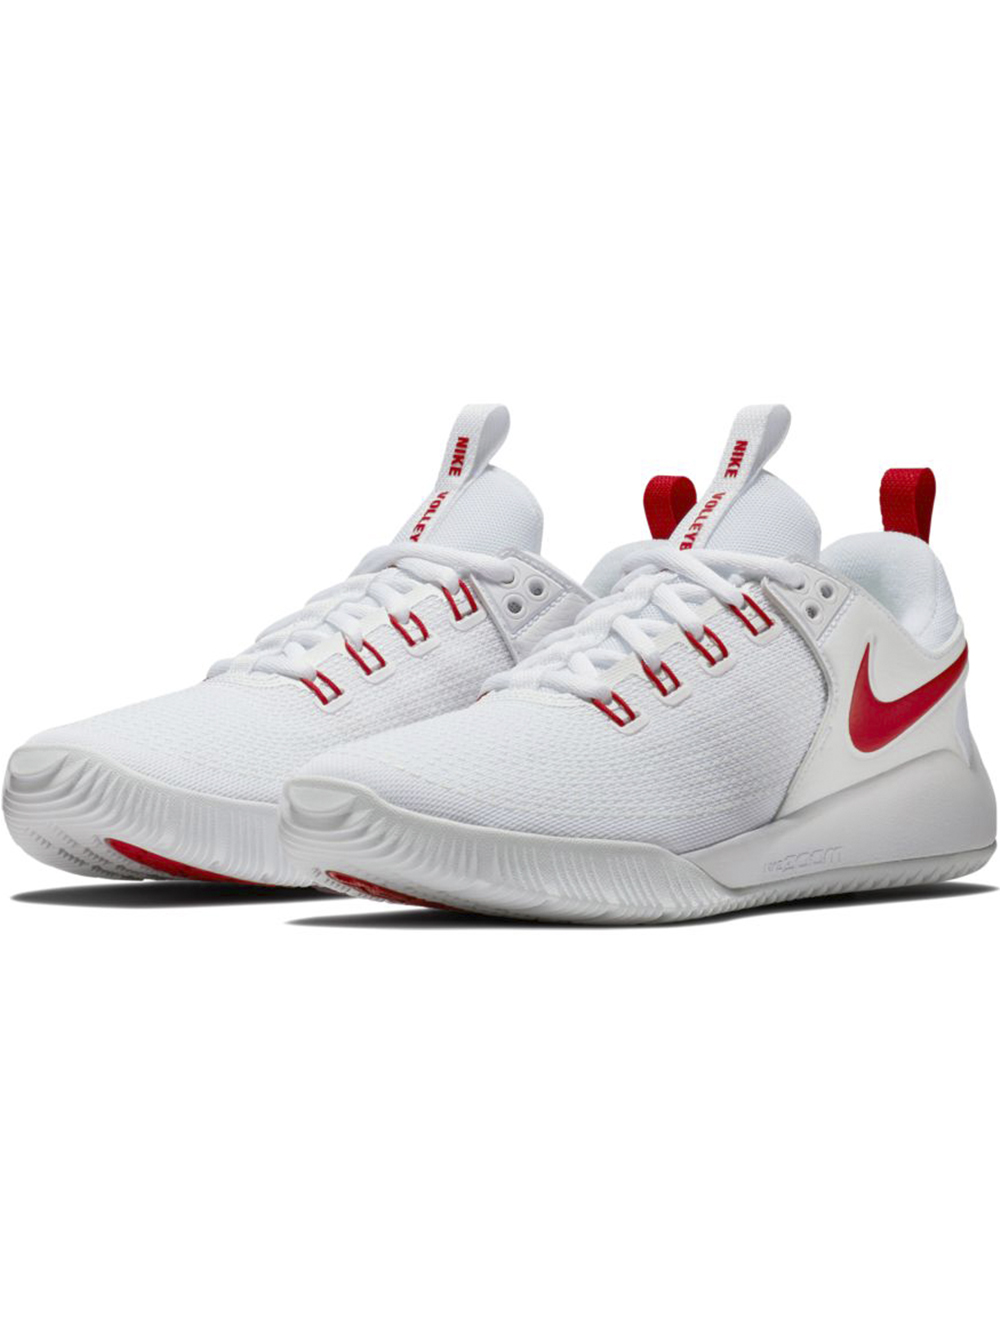 low priced 372da 6ab4c A durable design crafted for hardcourt surfaces, Nike Zoom HyperAce 2  Women s Training Shoe features a Zoom Air unit for lightweight cushioning  and a TPU ...